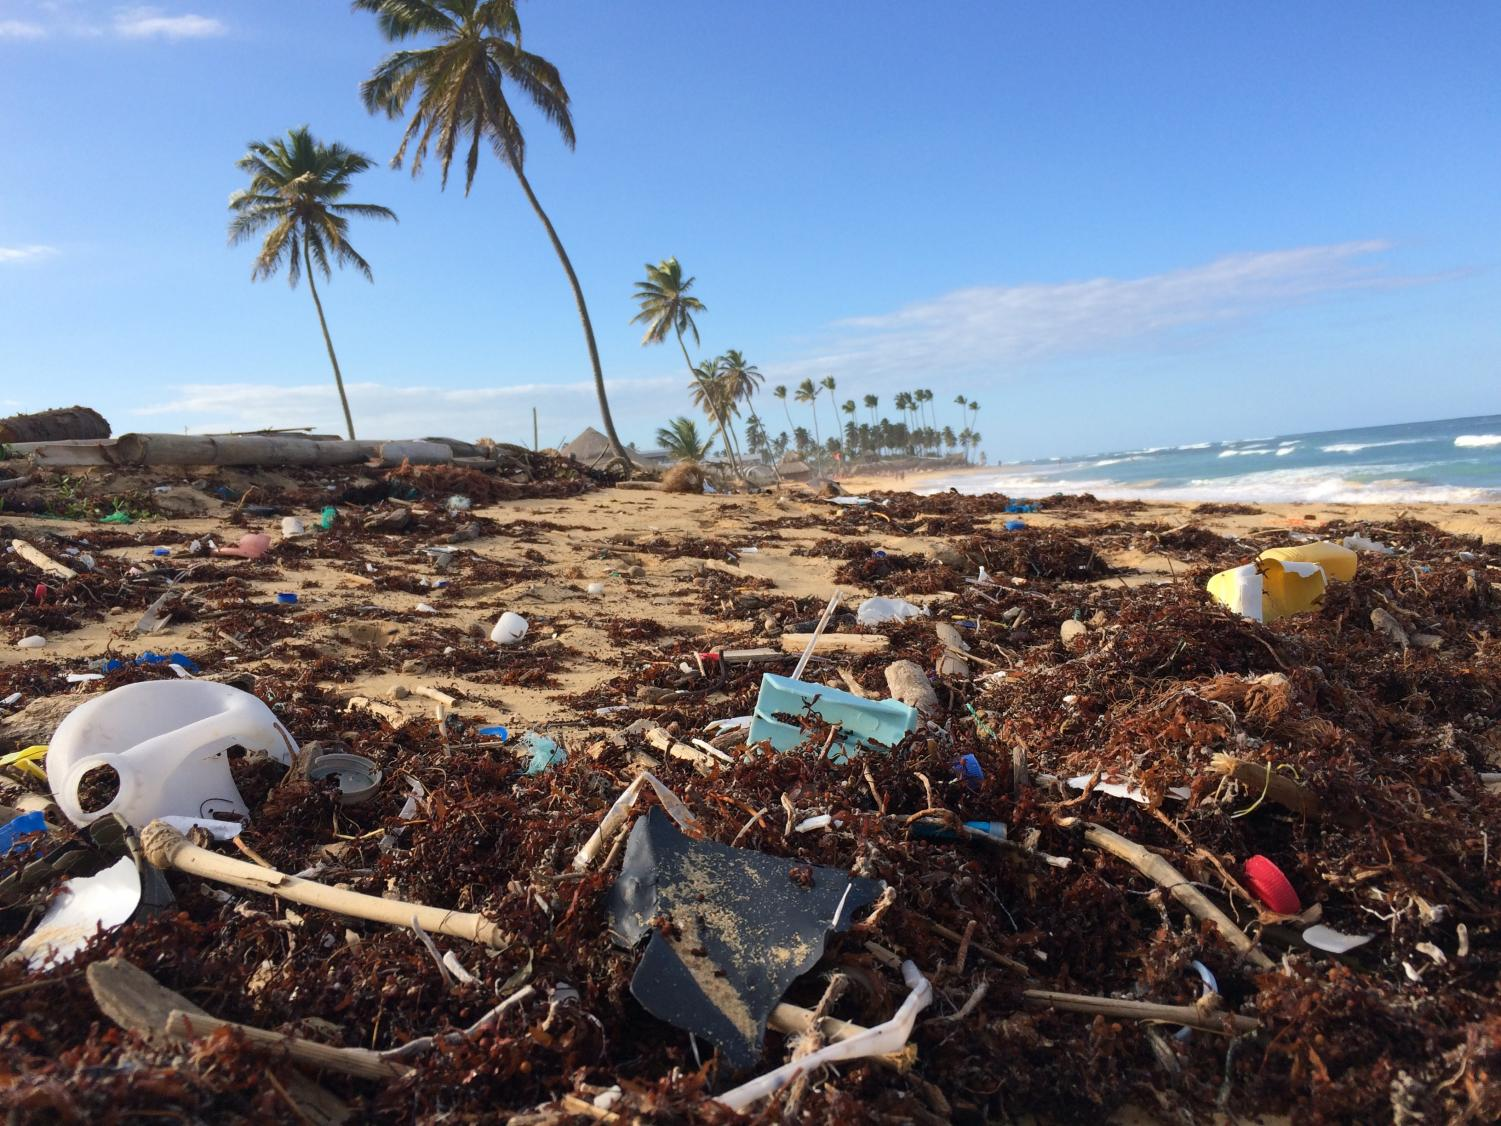 With over 5.25 trillion pieces of plastic floating around in the Earth's oceans, some of it makes its way onto our shores.